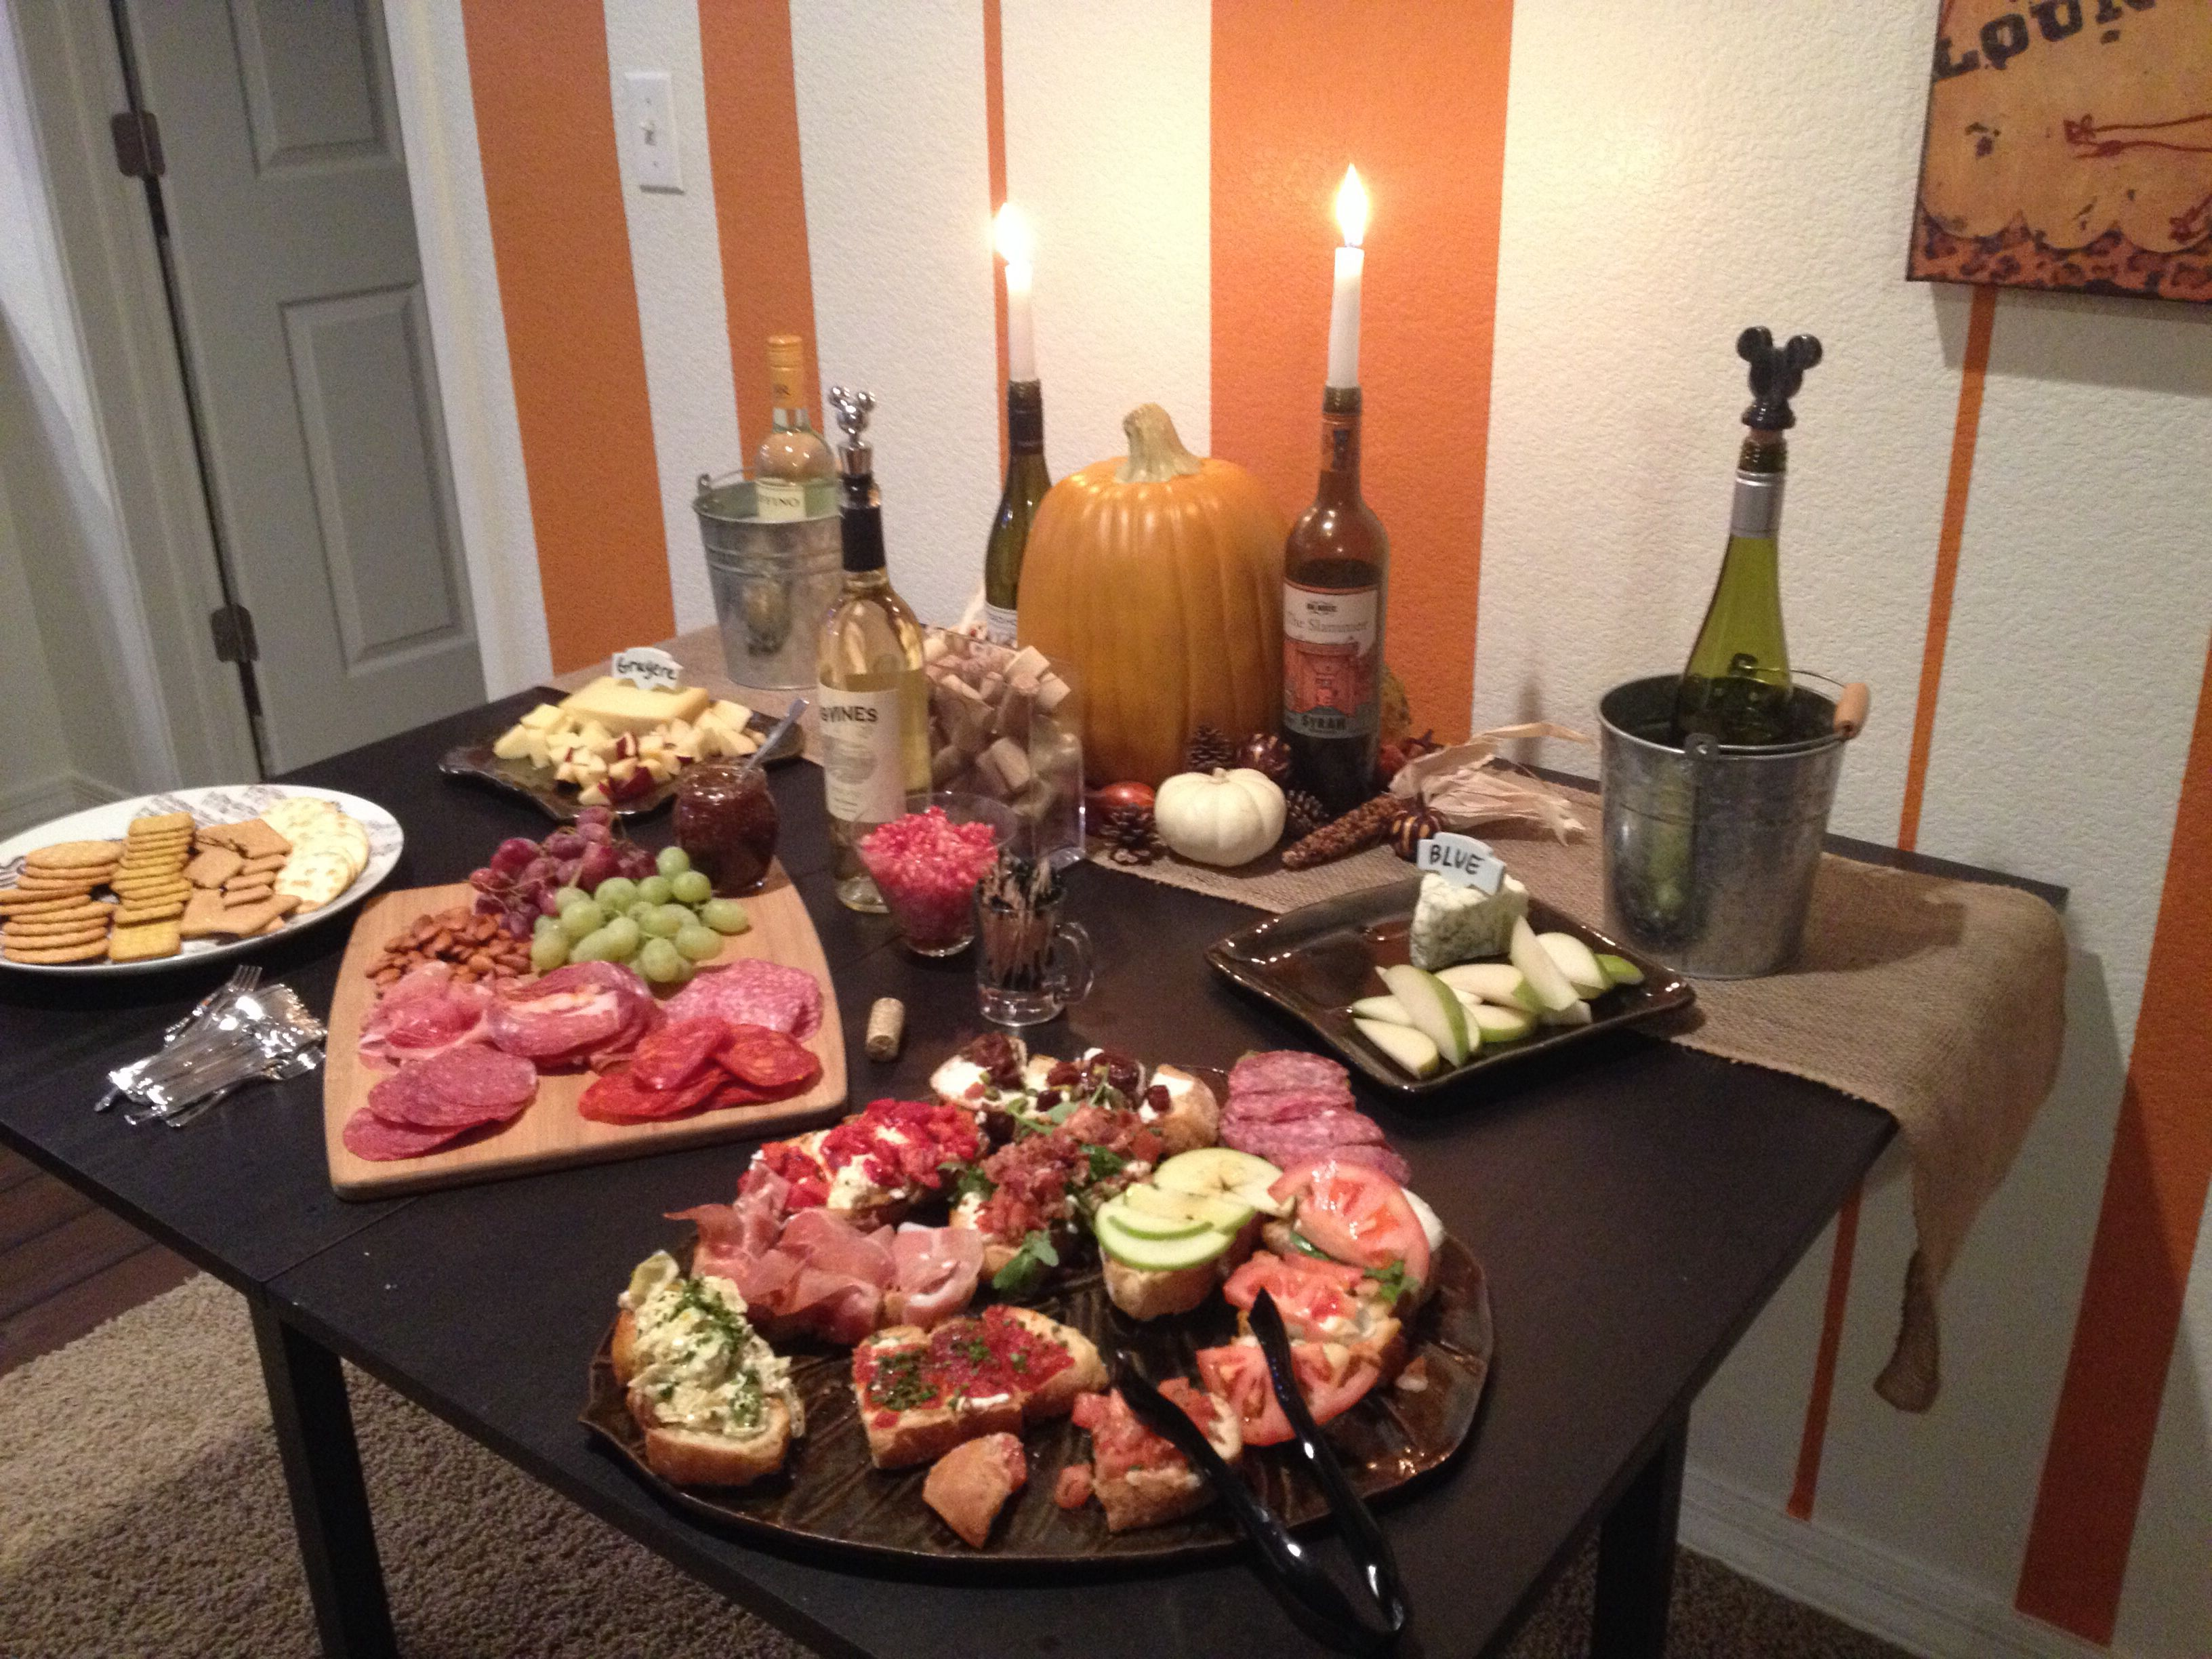 Wine and cheese party layout ideas #wine #cheese   Parties ...